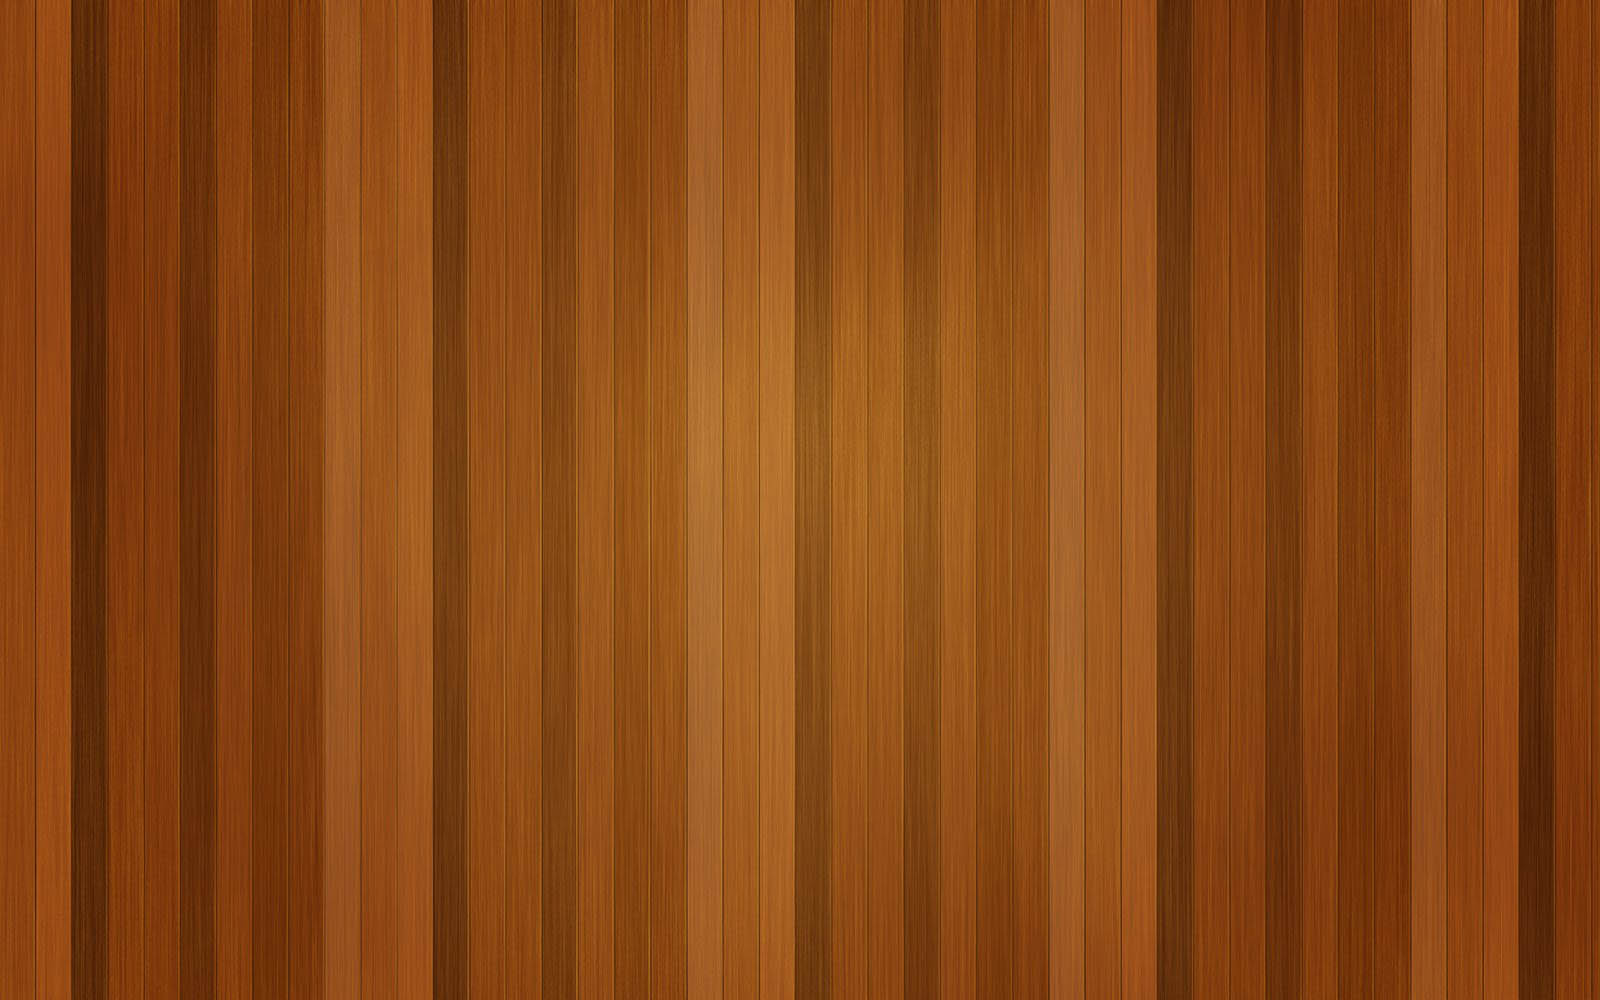 Tag Wood Wallpapers Images Photos Pictures and Backgrounds for 1600x1000